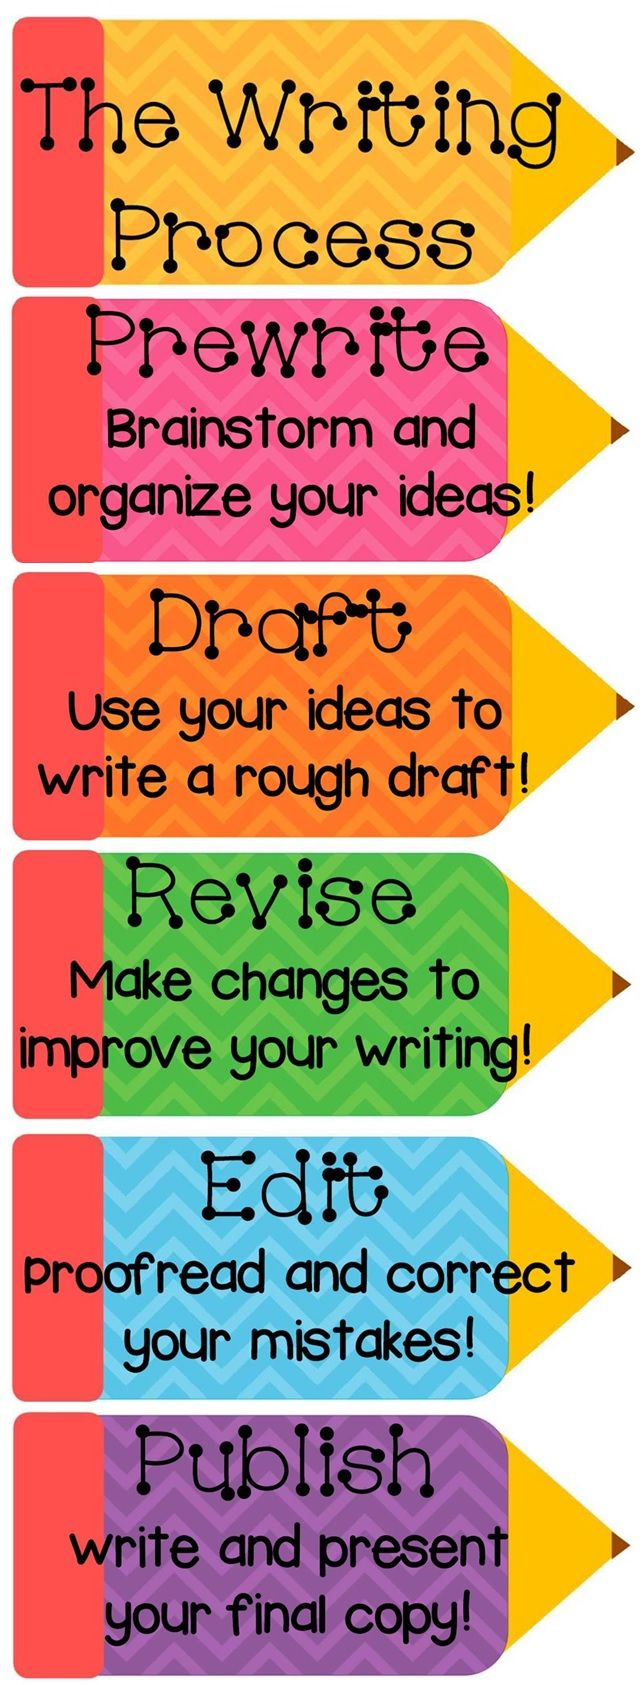 This is a great poster to have in the classroom, to remind students of the writing process